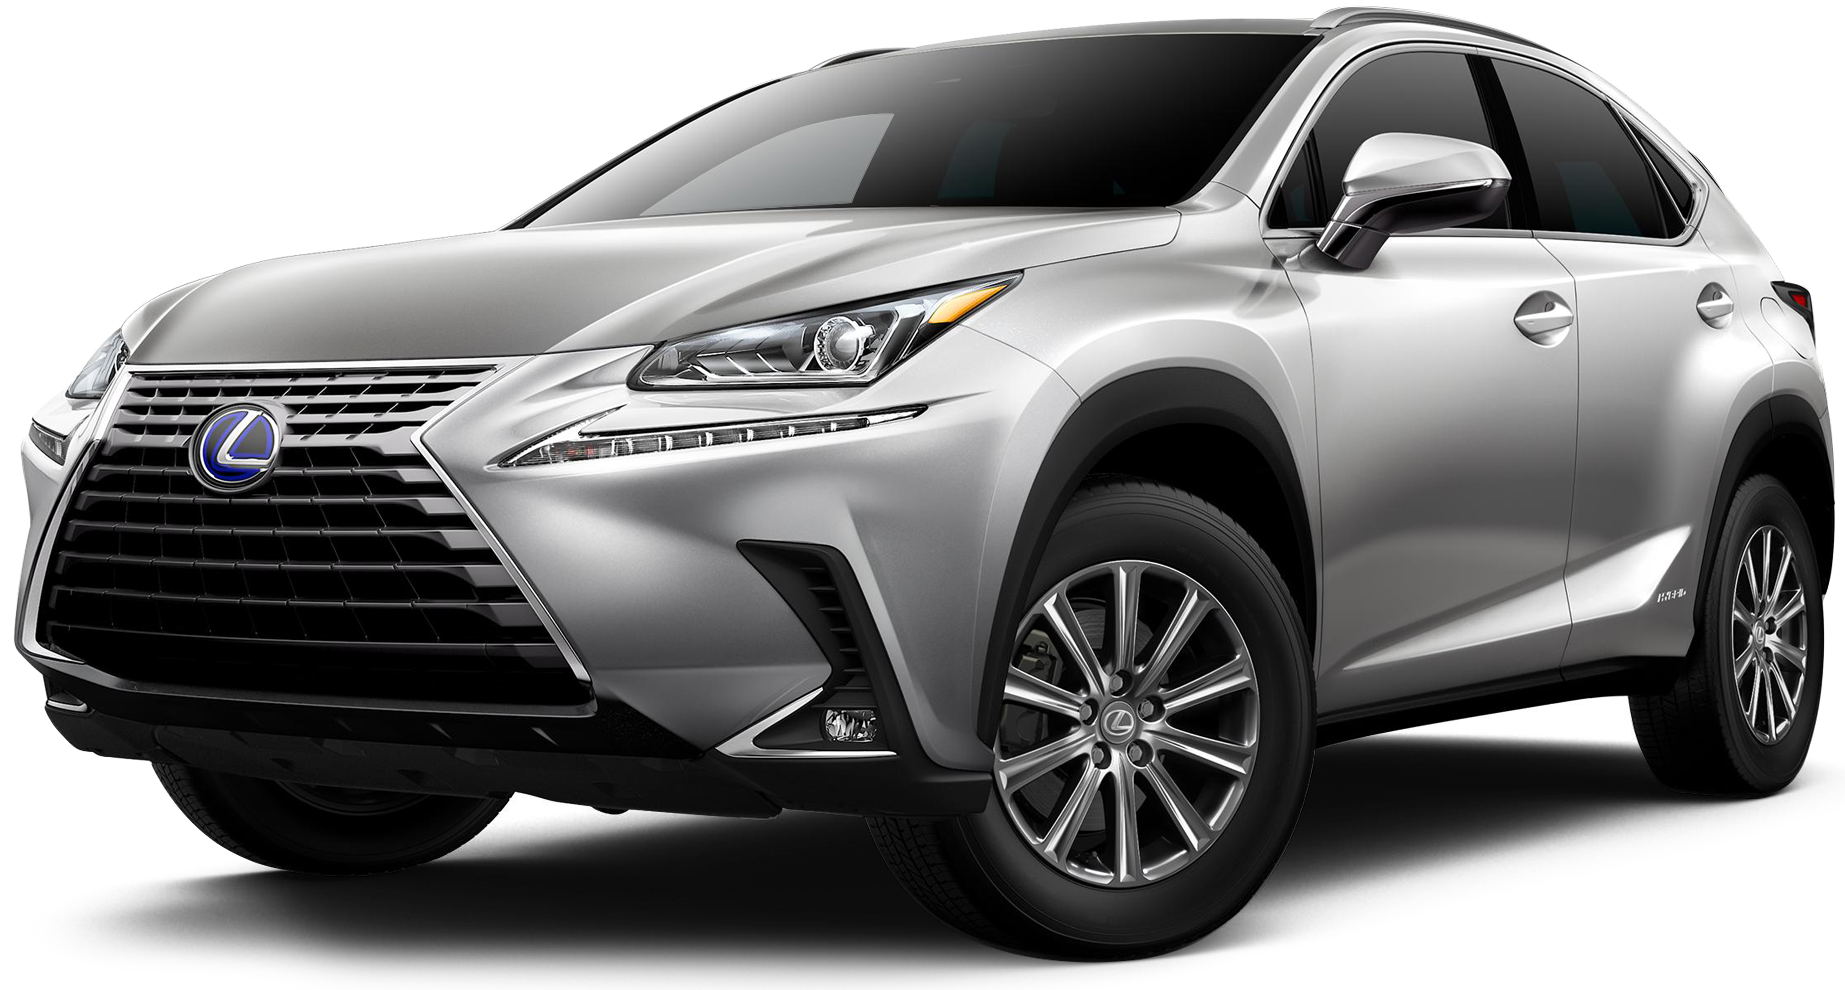 2019 Lexus NX 300h Incentives, Specials & Offers in Lakeway TX